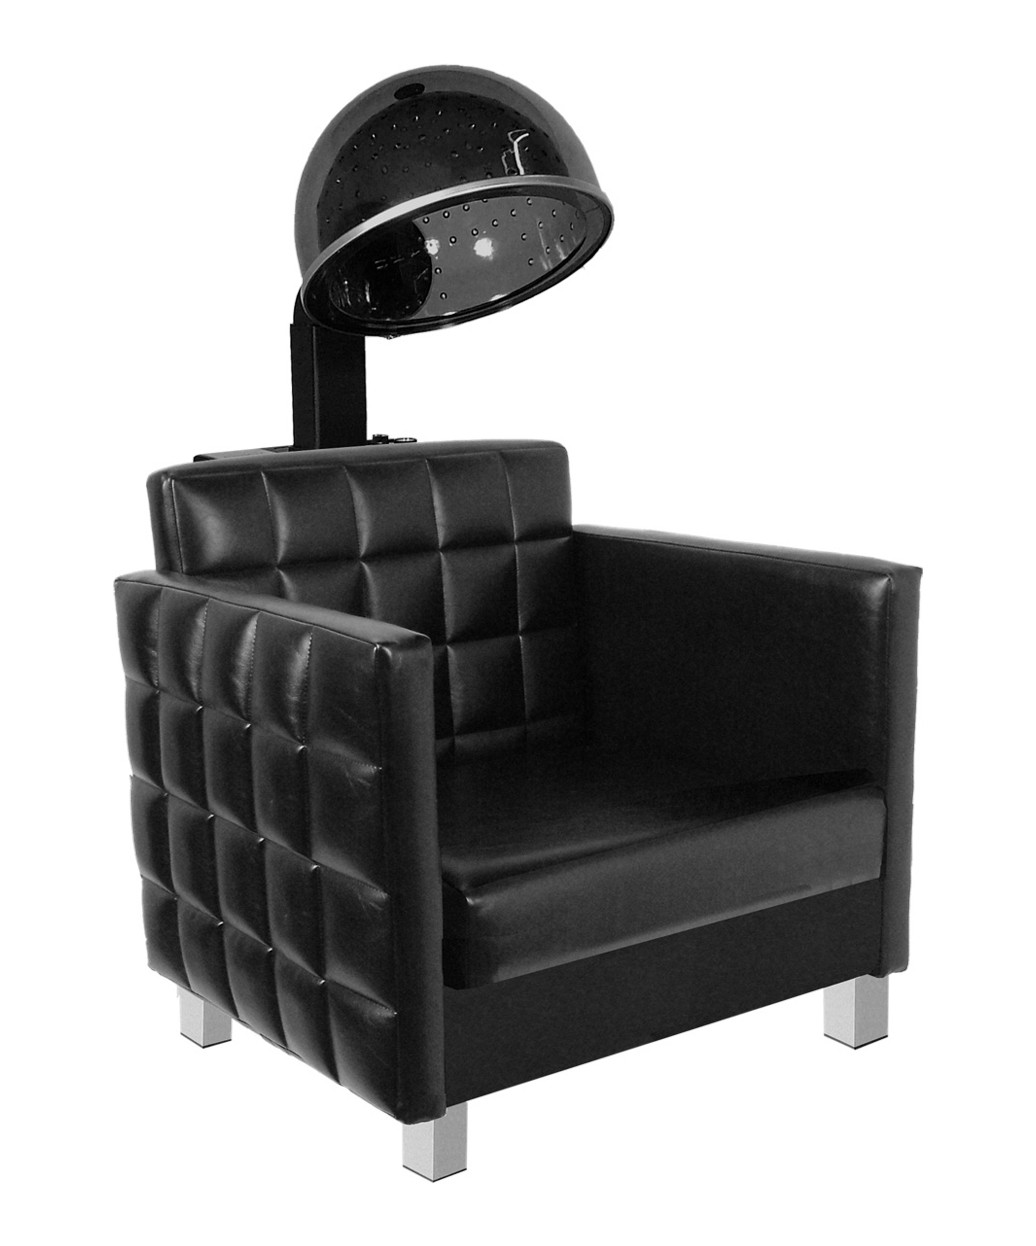 Salon Dryer Chair Collins 6820 Nouveau Dryer Chair